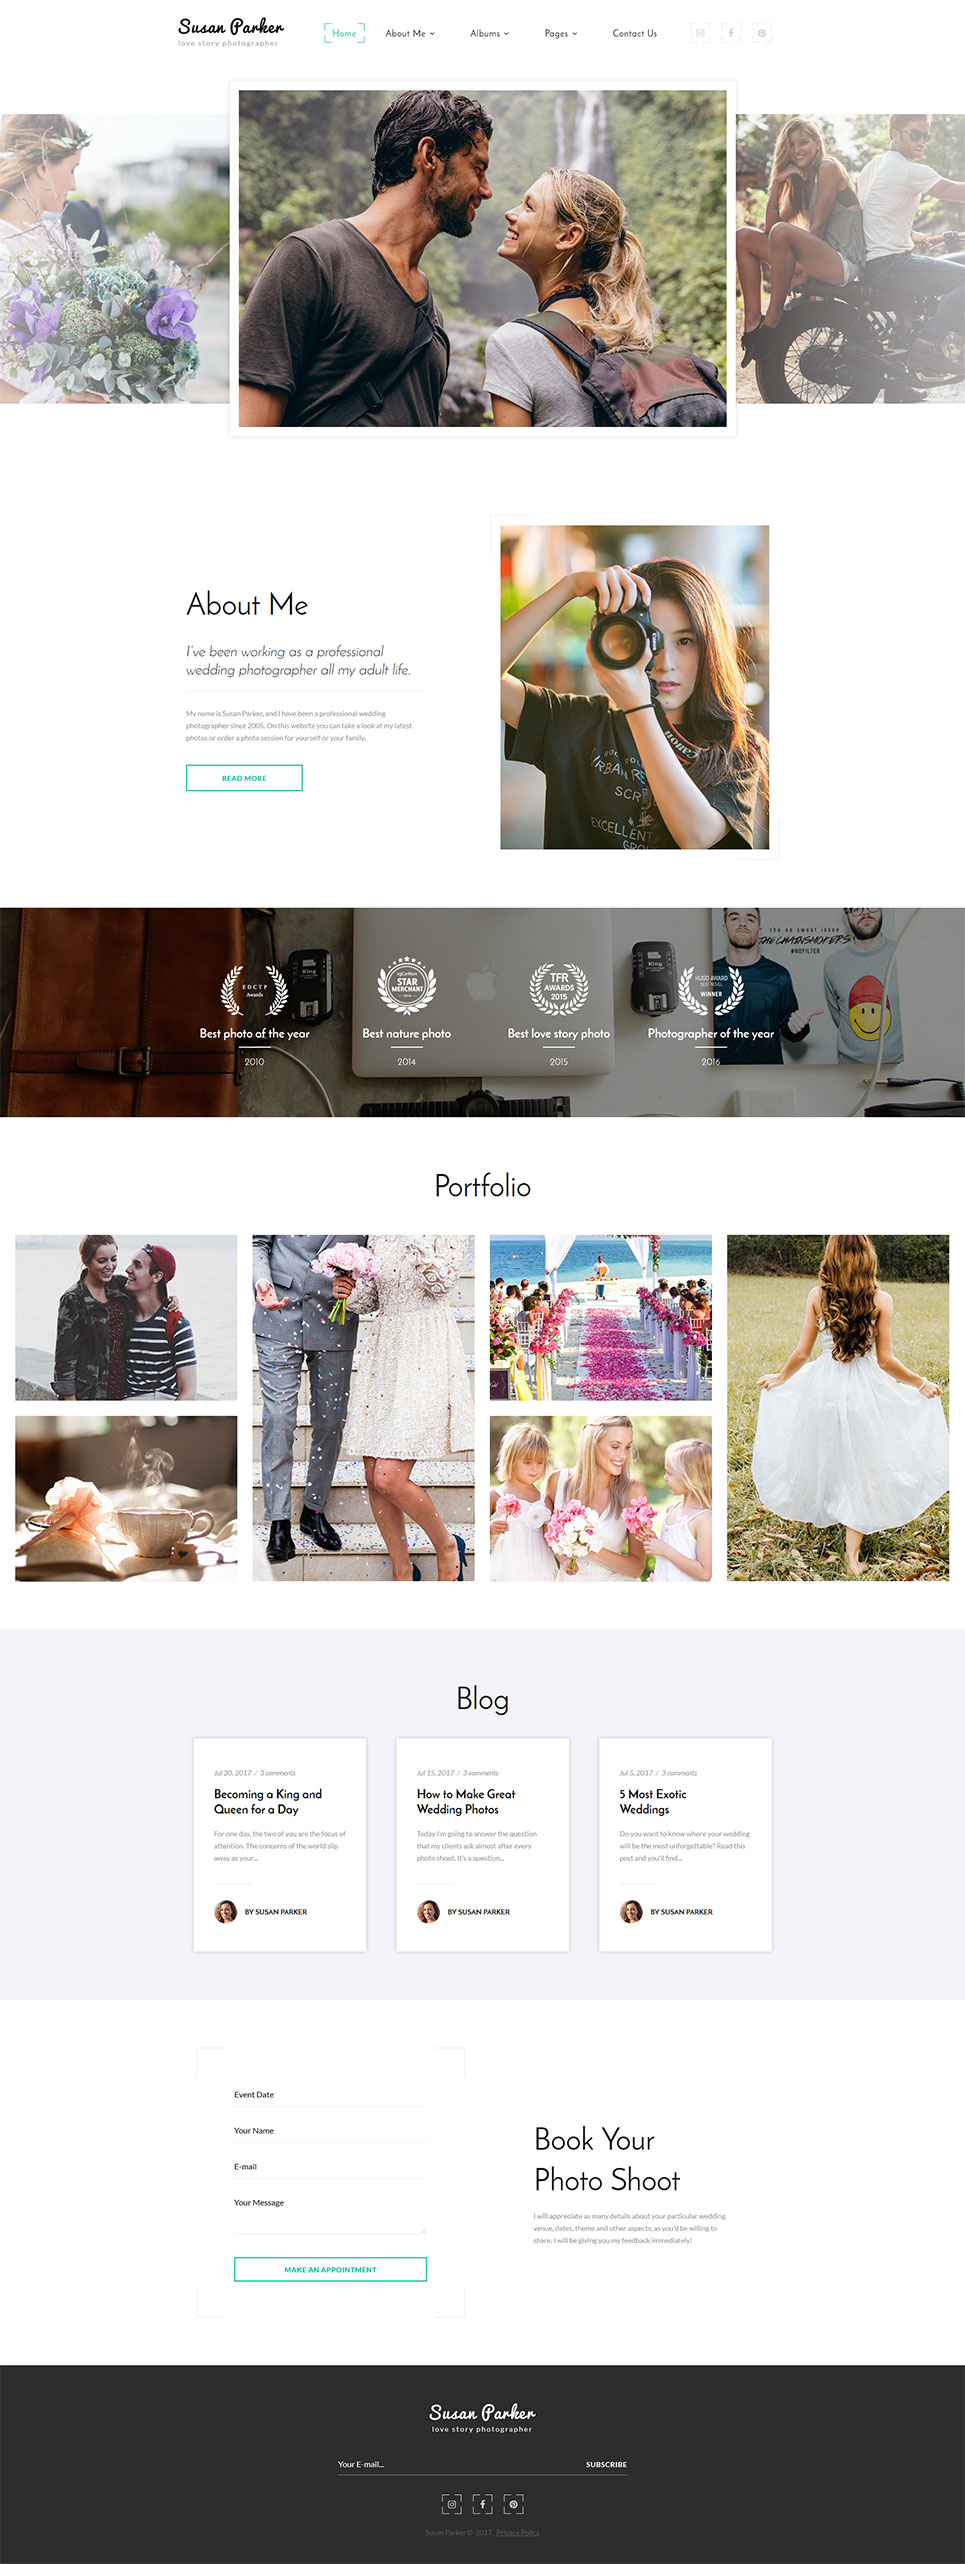 Photography website HTML template